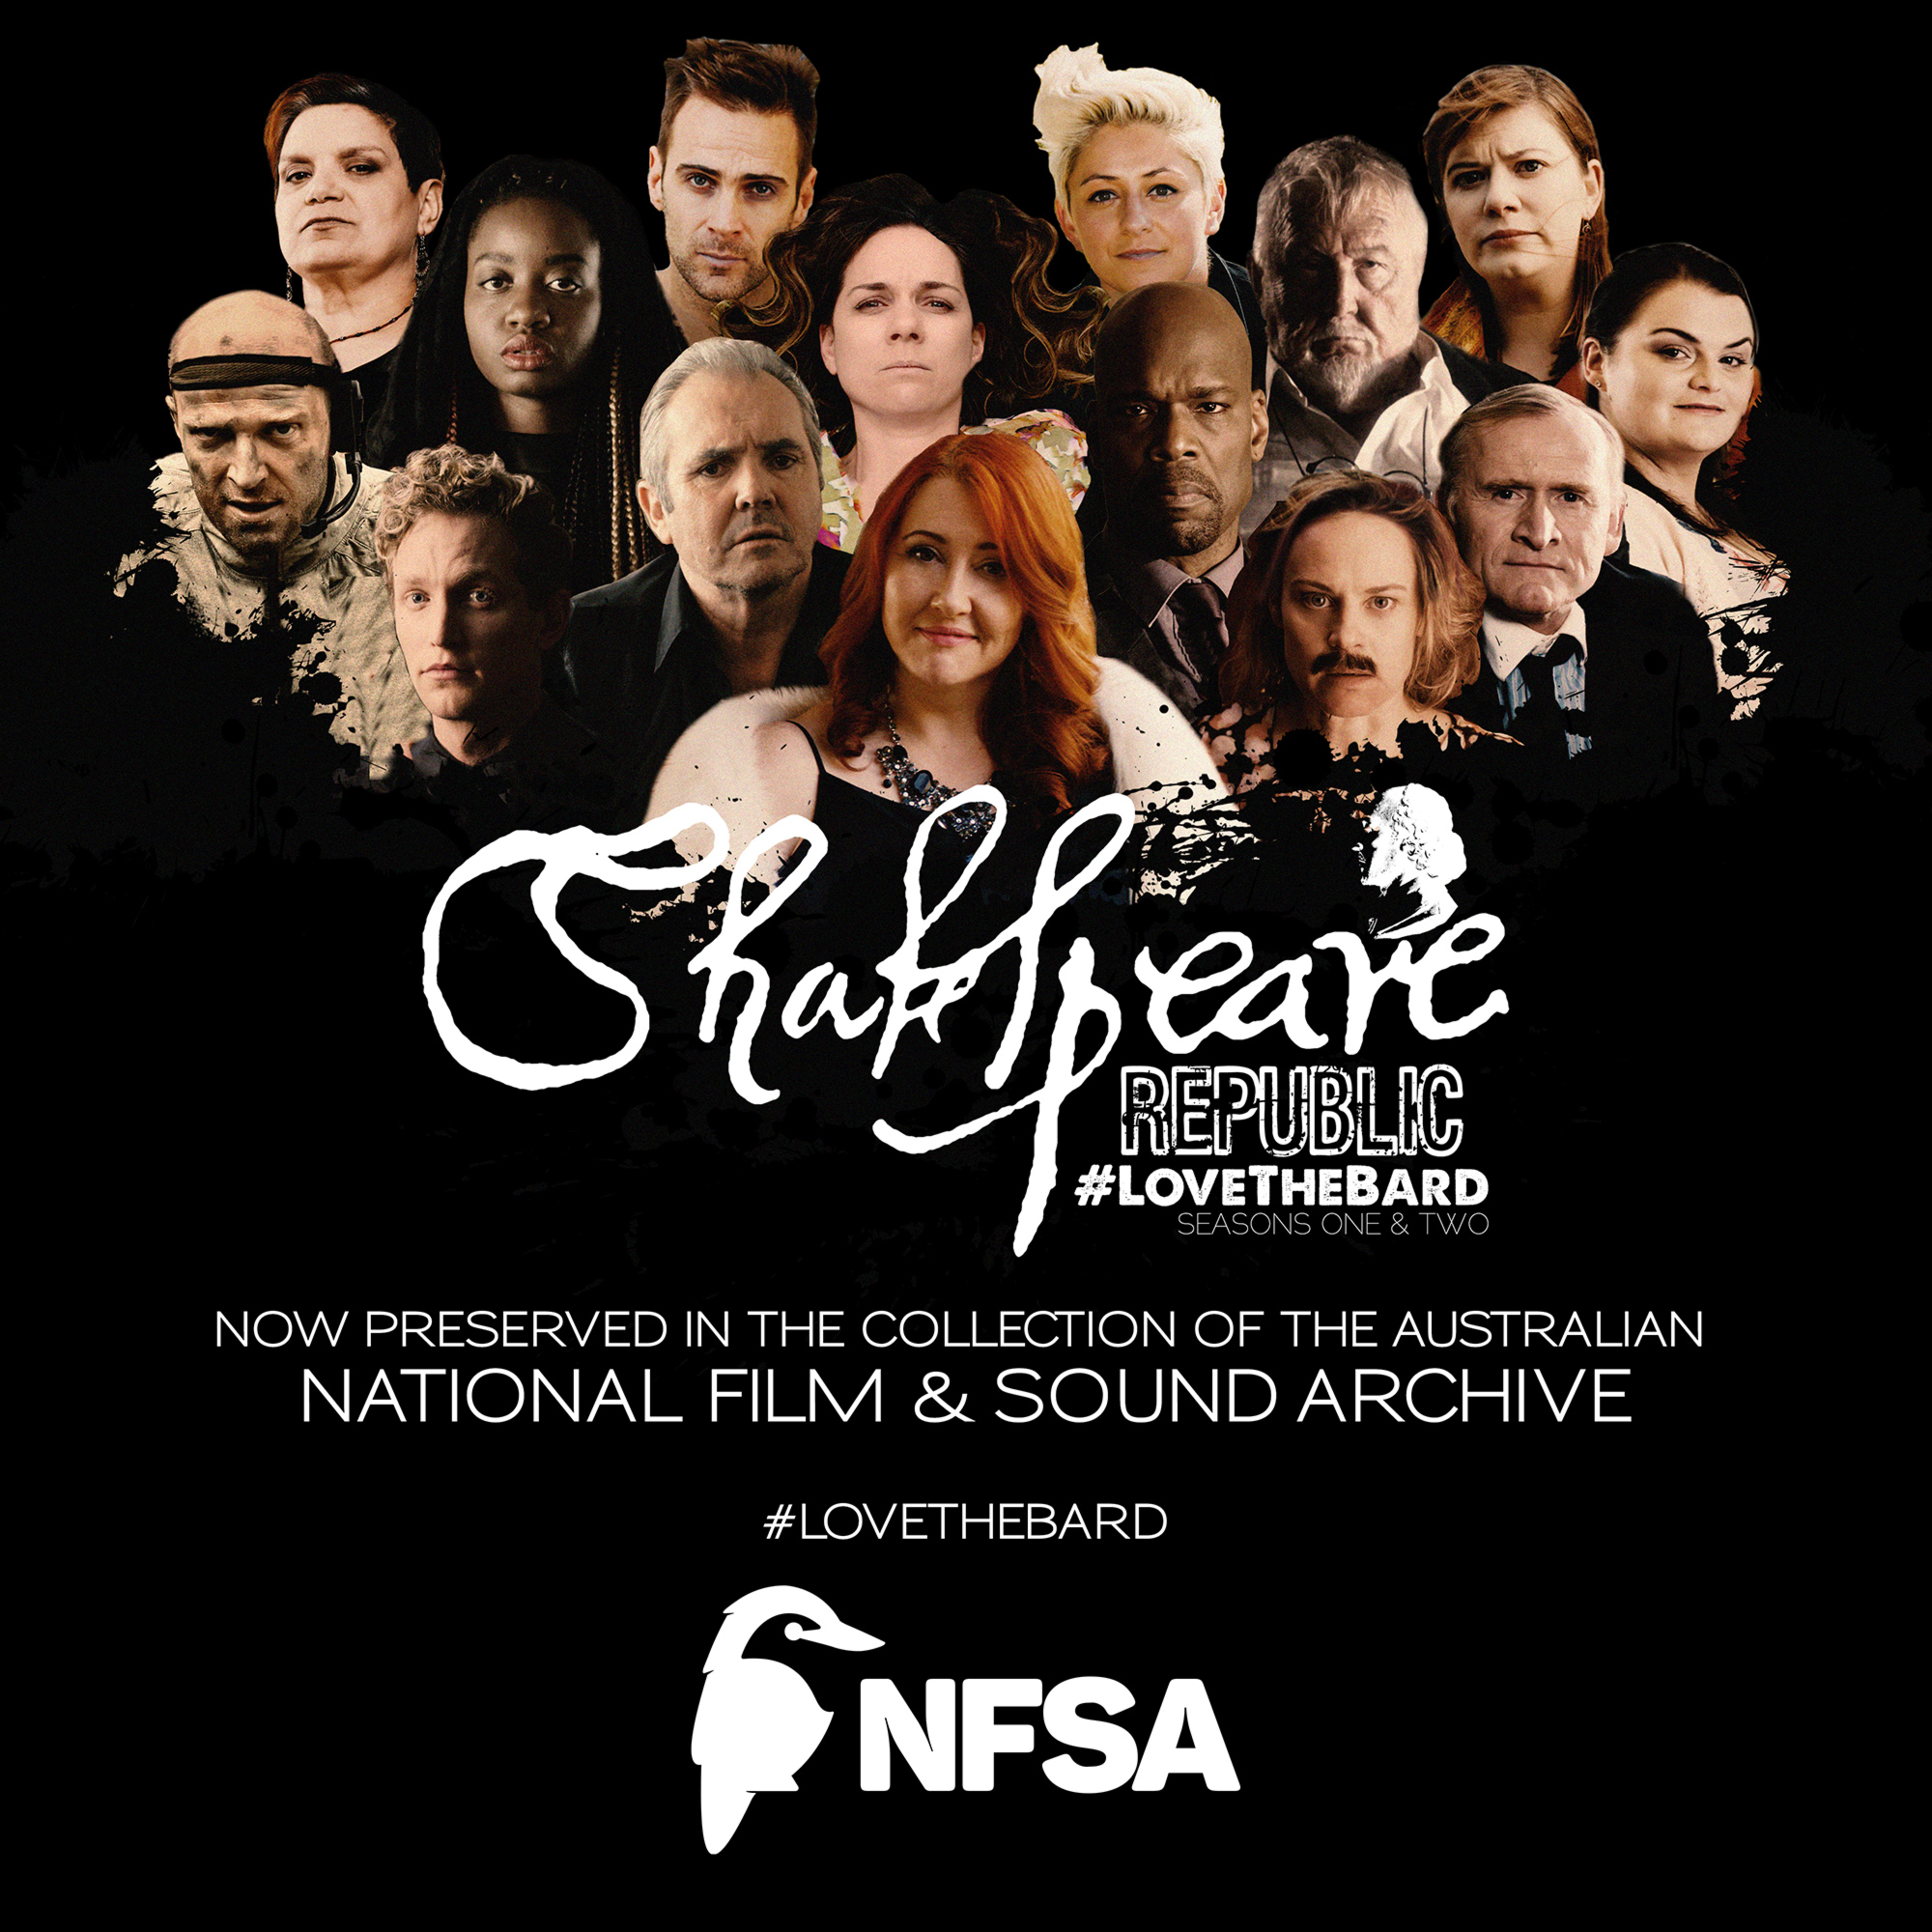 Shakespeare Republic acquired by National Film & Sound Archive!